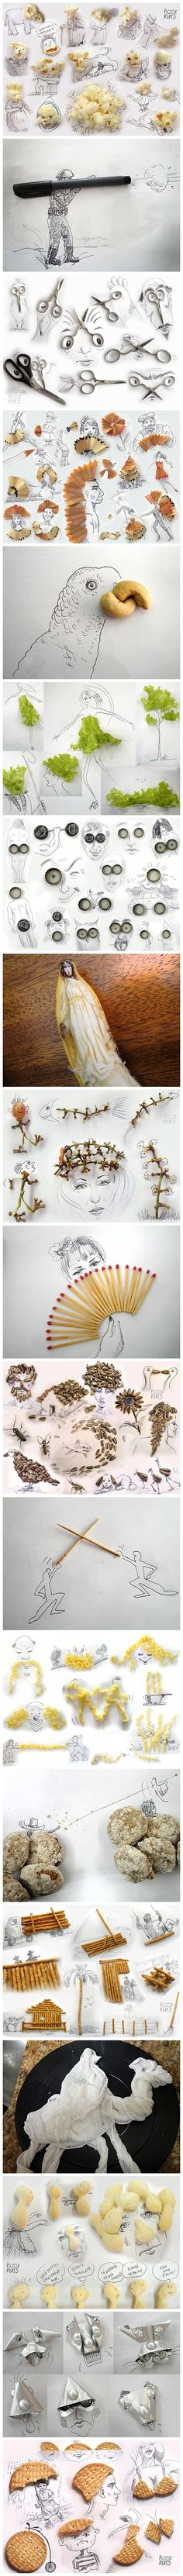 "Victor Nunes will change the way you look at common-day things. Seriously, what a whimsical imagination he must have. Artist Victor Nunes turns everyday objects into sets of cute and quirky doodles. He launched his Facebook page only 2 weeks ago and it has already amassed over 4,000 followers. Its only message is in Portuguese which translates to ""On this page you will find a bunch of little faces and other little things. And with great humor!"" in English."